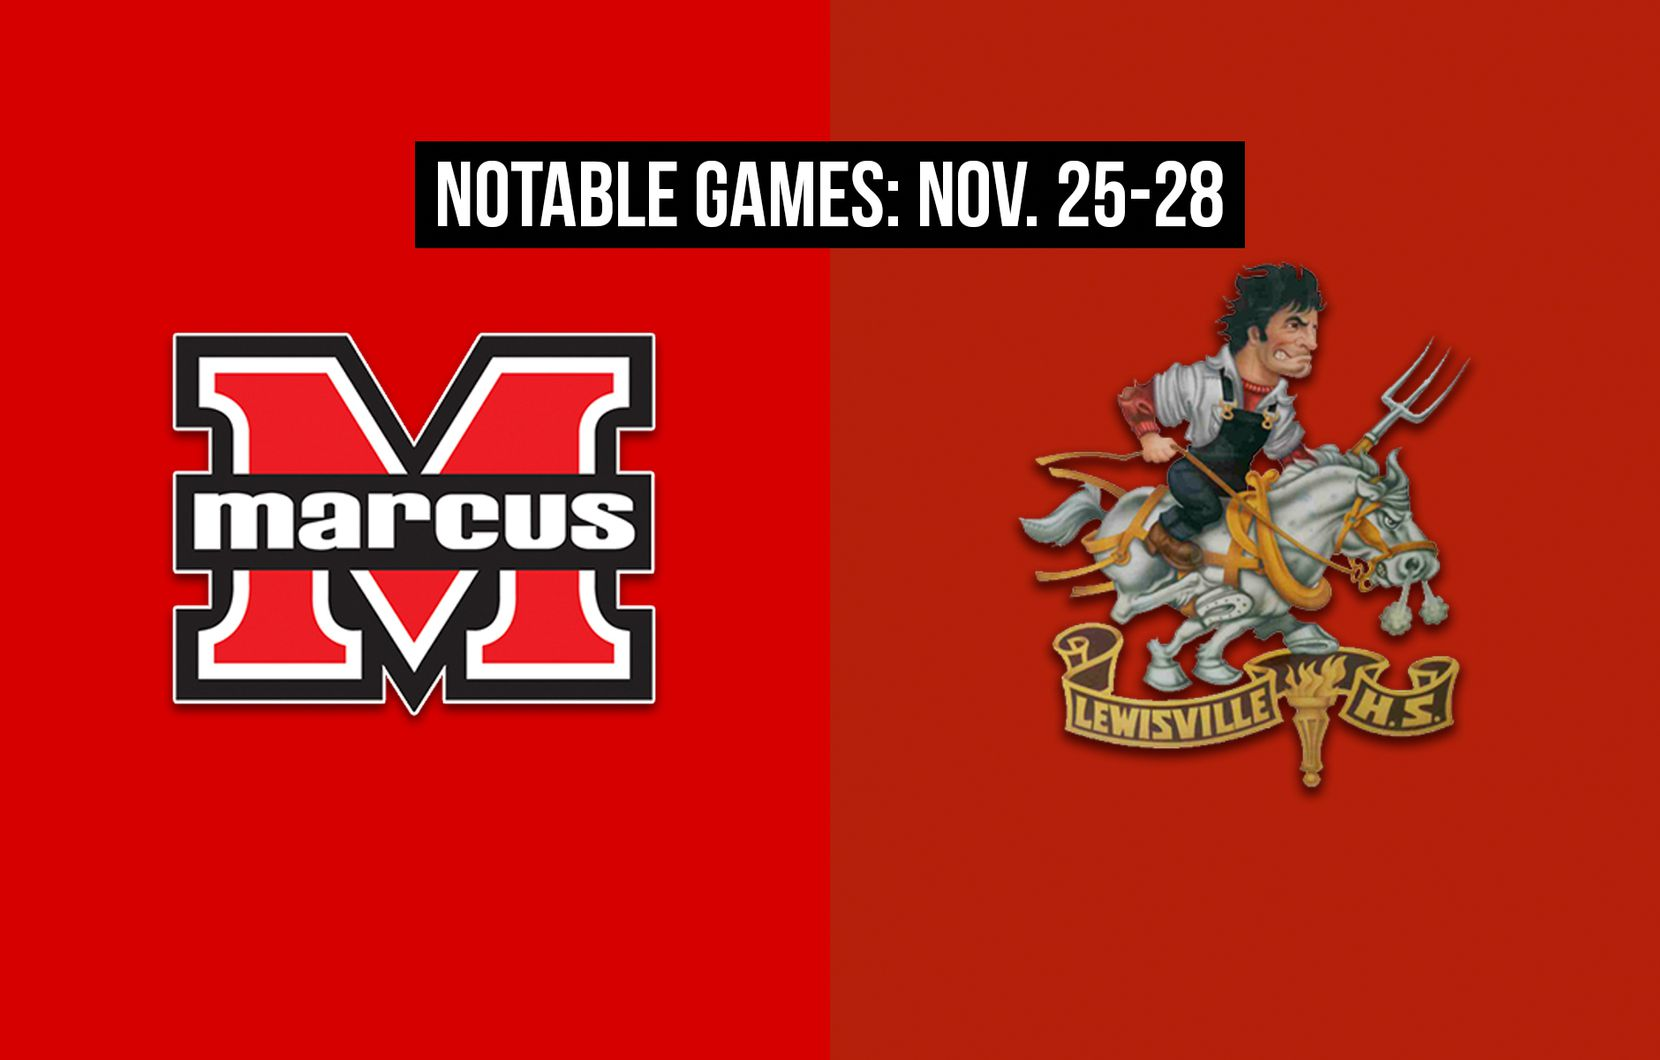 Notable games for the week of Nov. 25-28 of the 2020 season: Flower Mound Marcus vs. Lewisville.